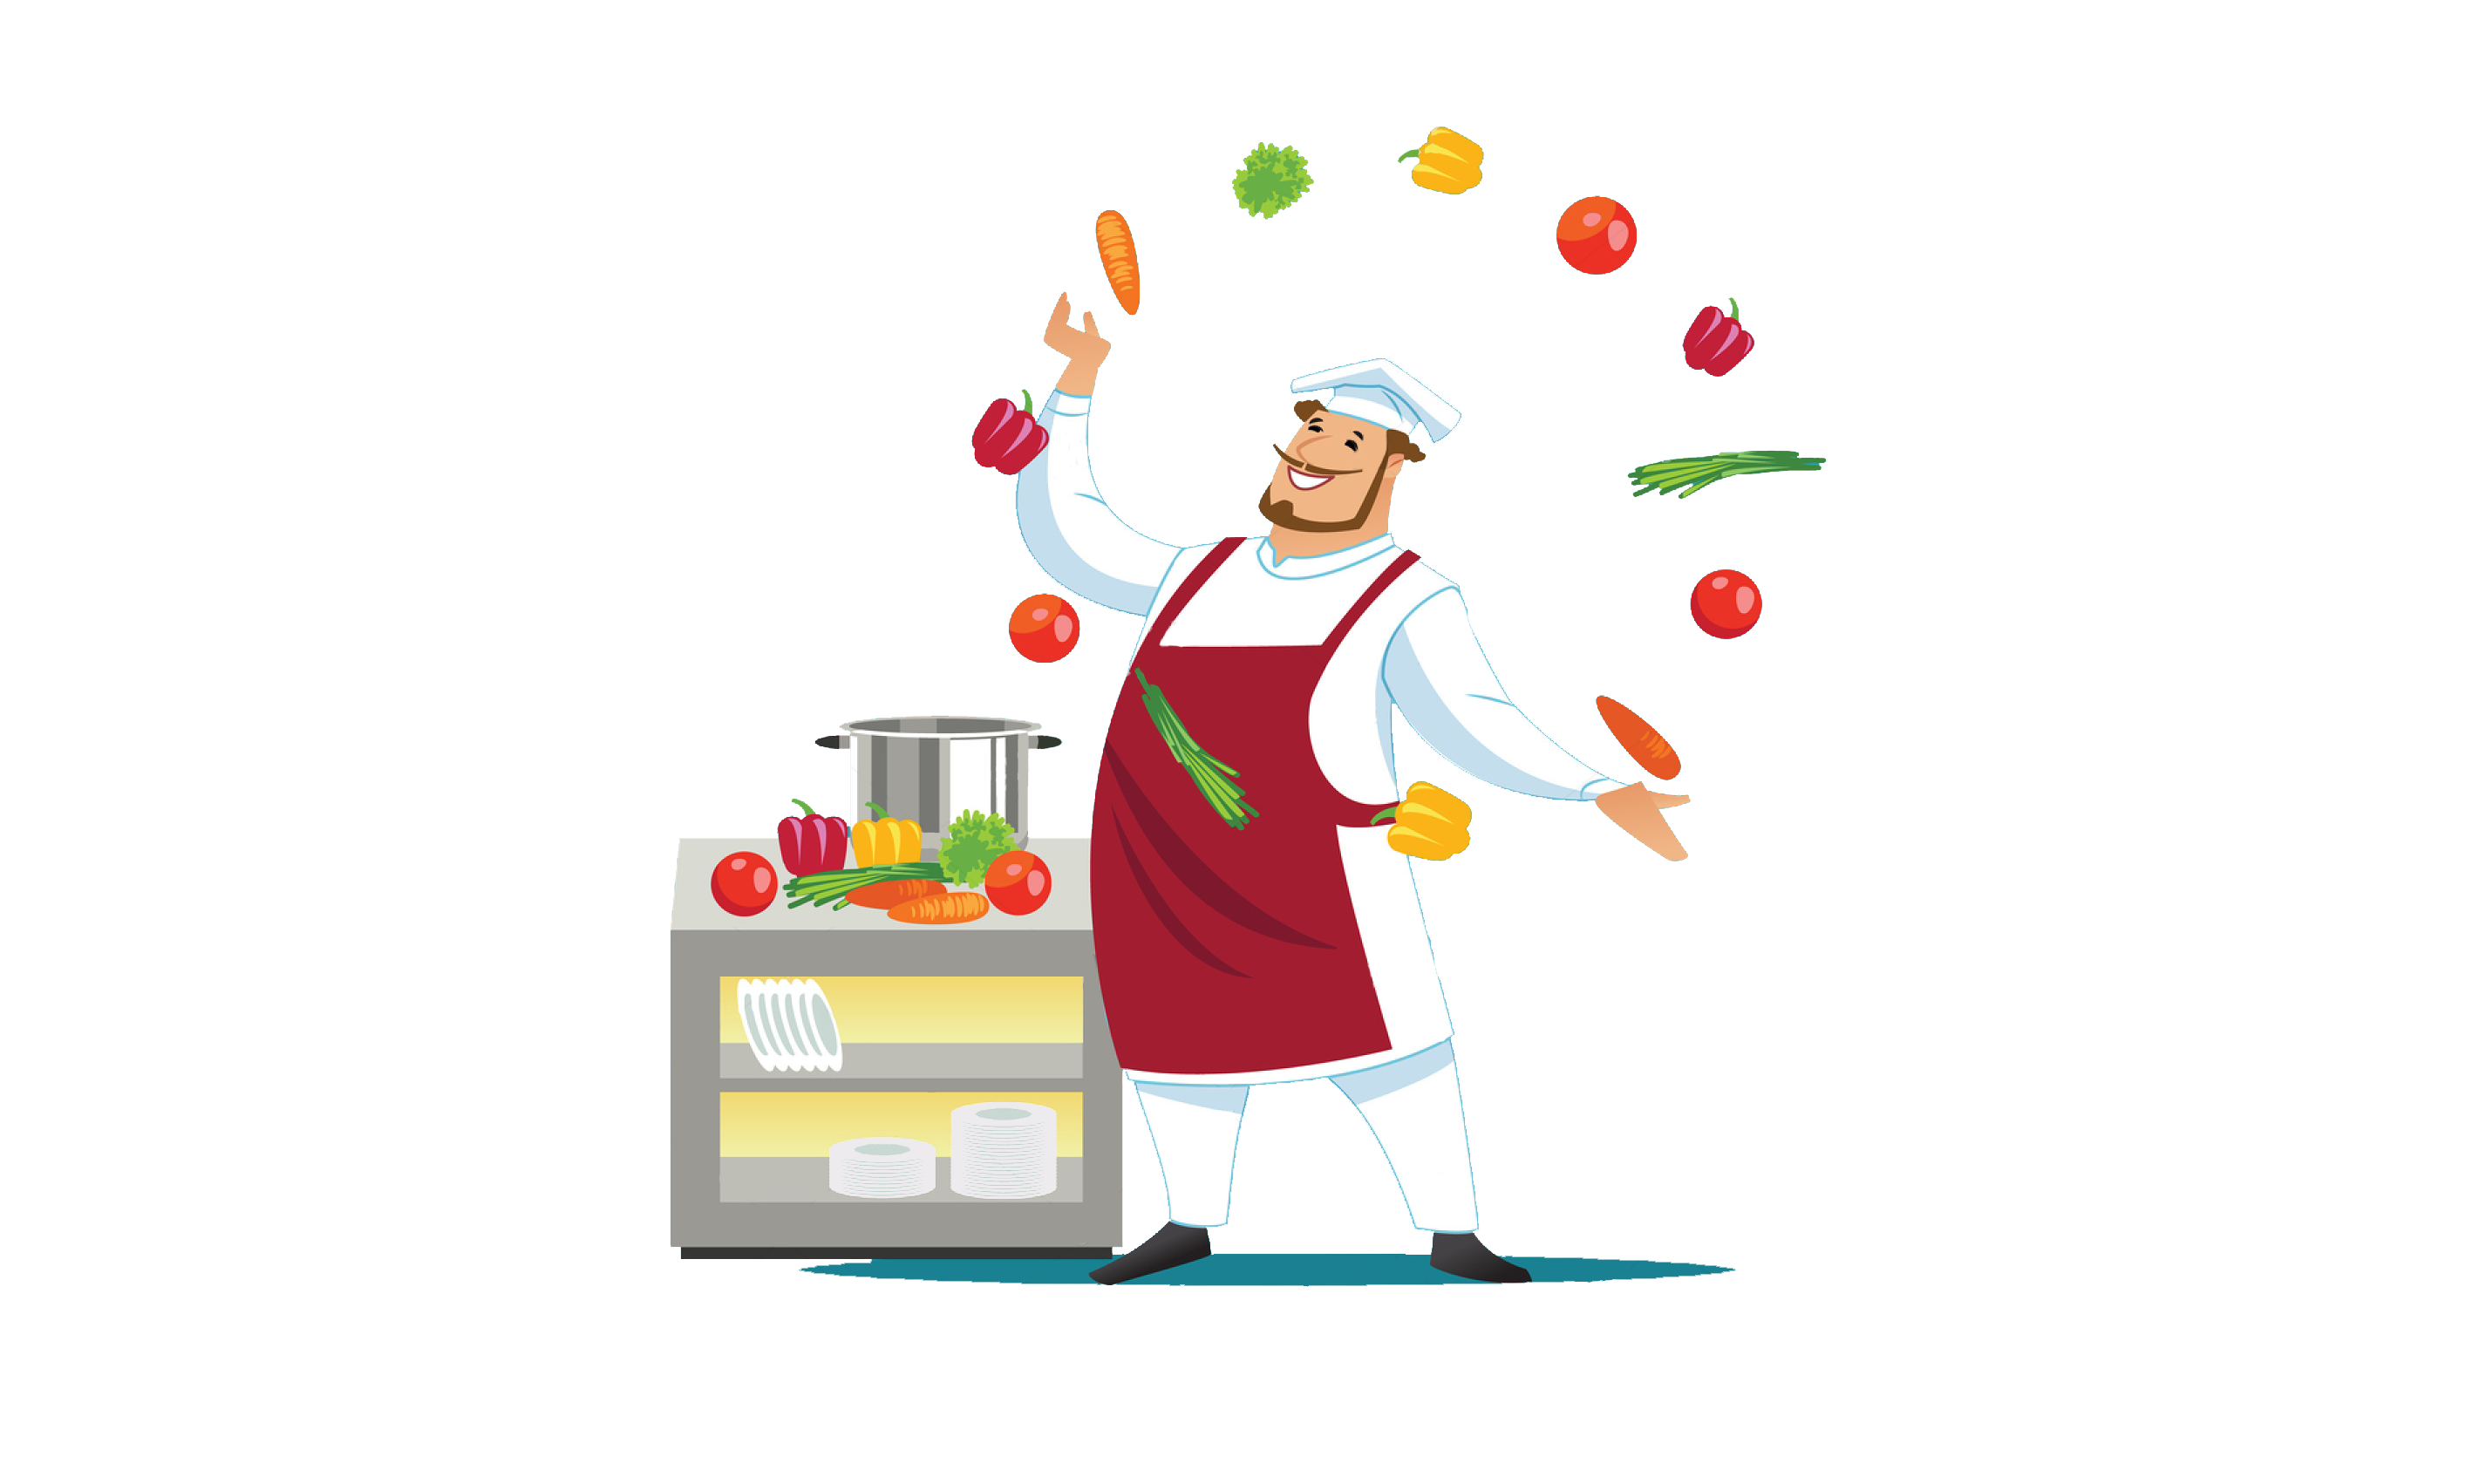 See before you eat. Clipart restaurant go to